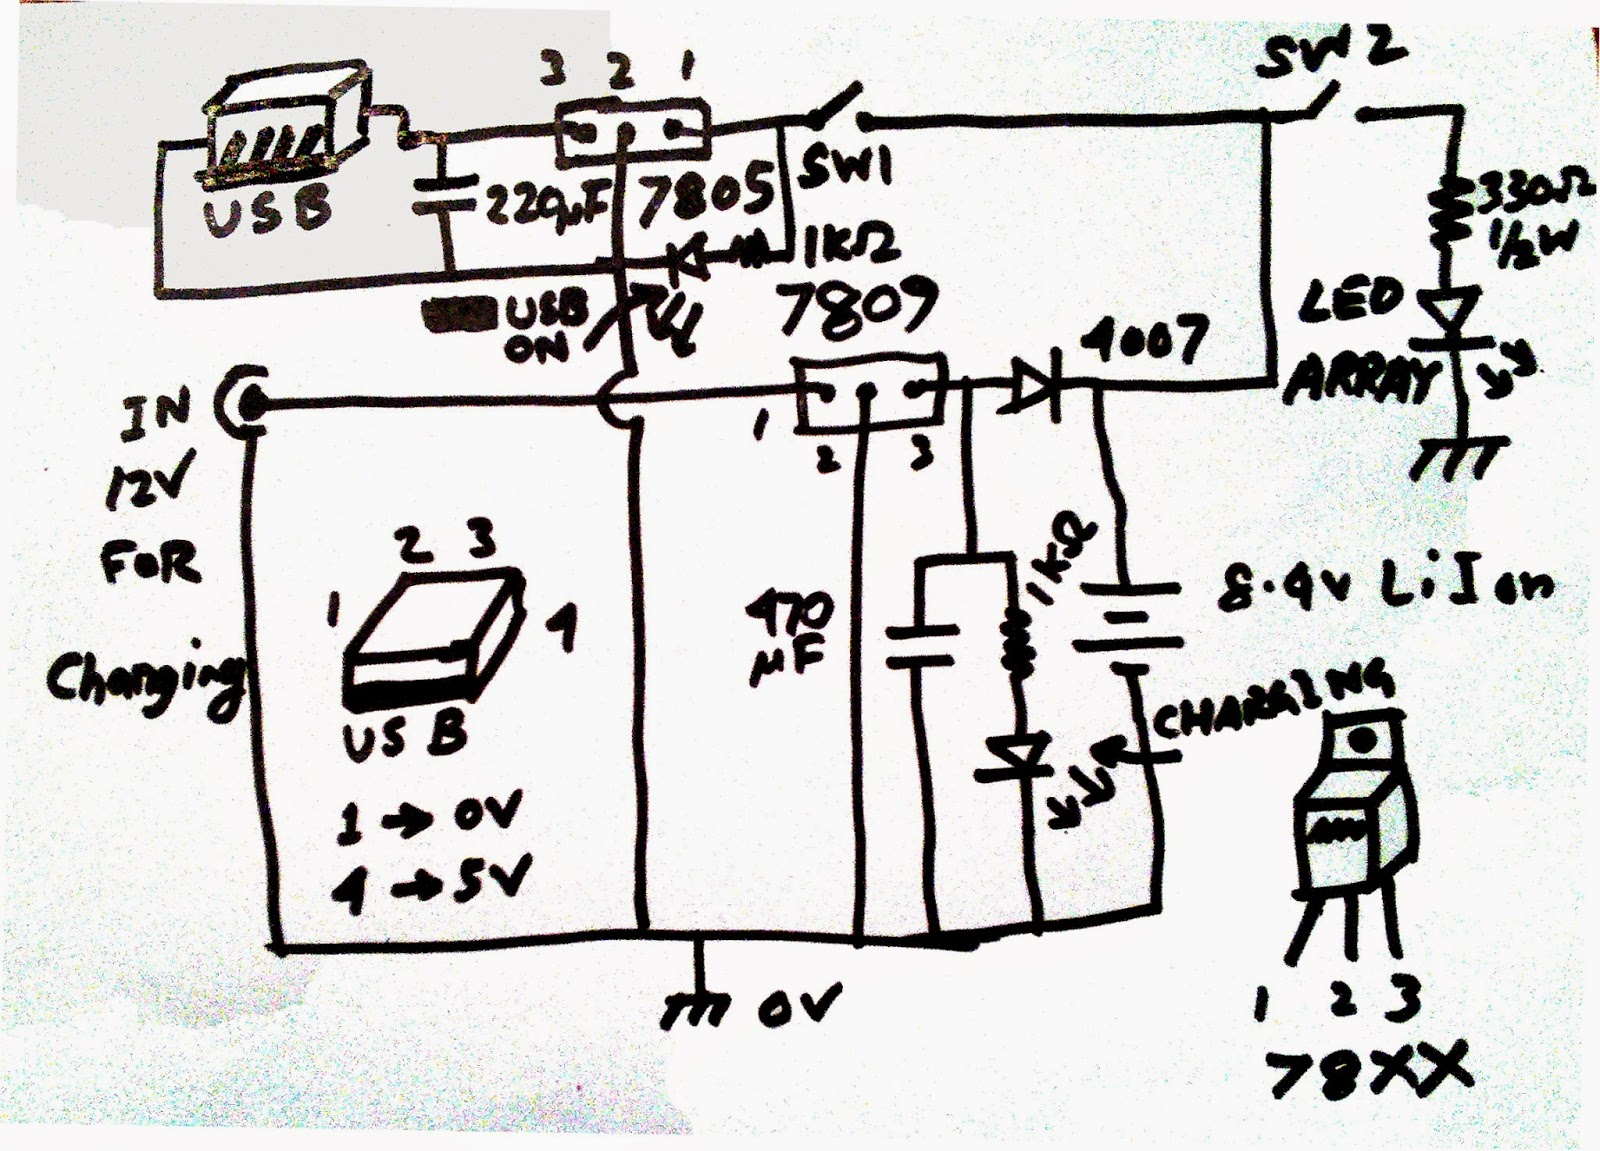 Scavengers Blog 2014 16 W Amplifier By Lm383 As You Can See Very Simple Diagram With Only A Few Components I Will Explain The Whole Circuit Step Lets Start Input Section